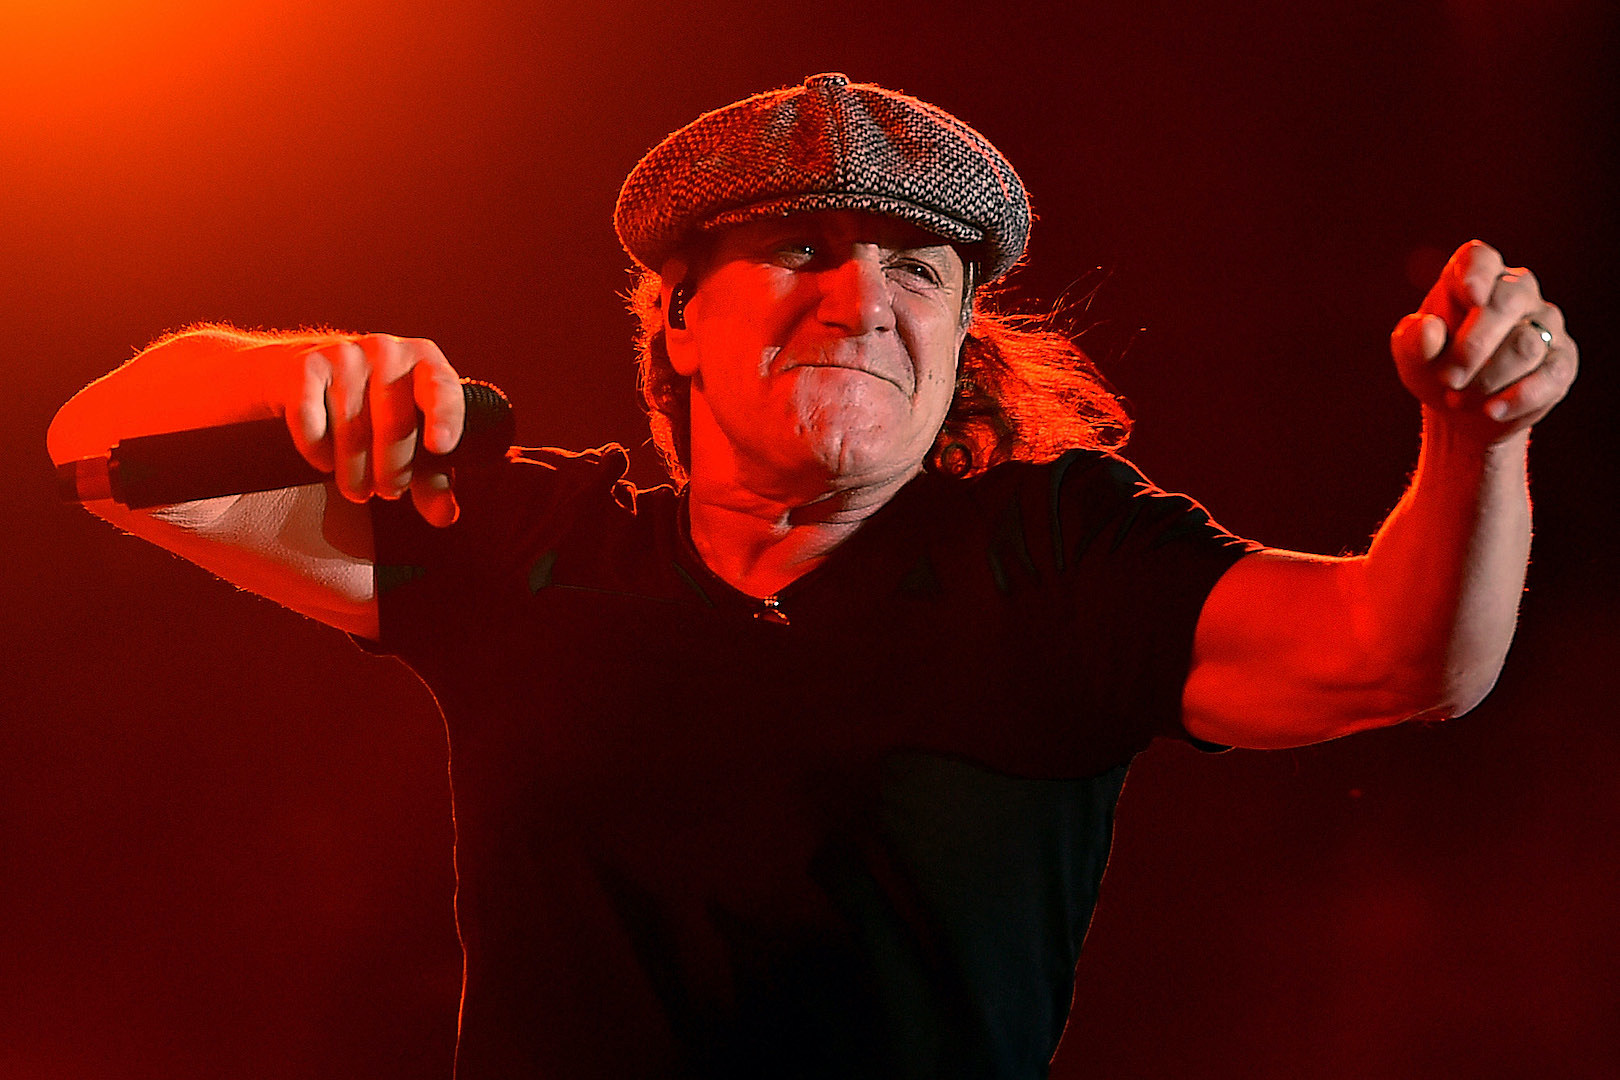 The Reason Why AC/DC's Brian Johnson Always Wears That Iconic Cap